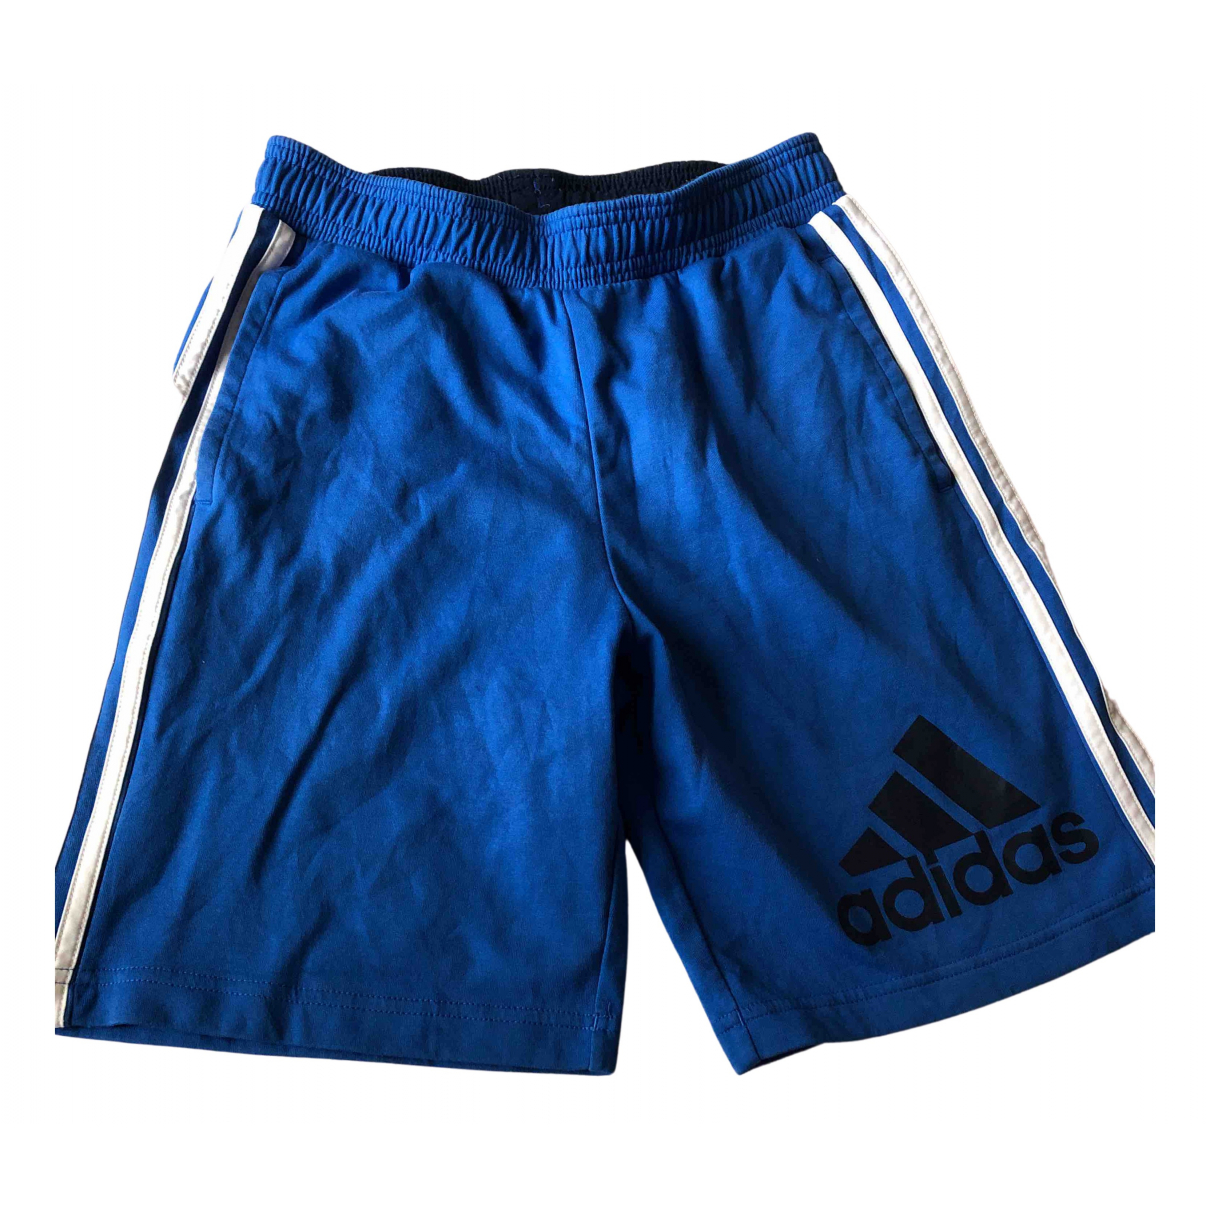 Adidas N Blue Cotton Shorts for Kids 14 years - S UK